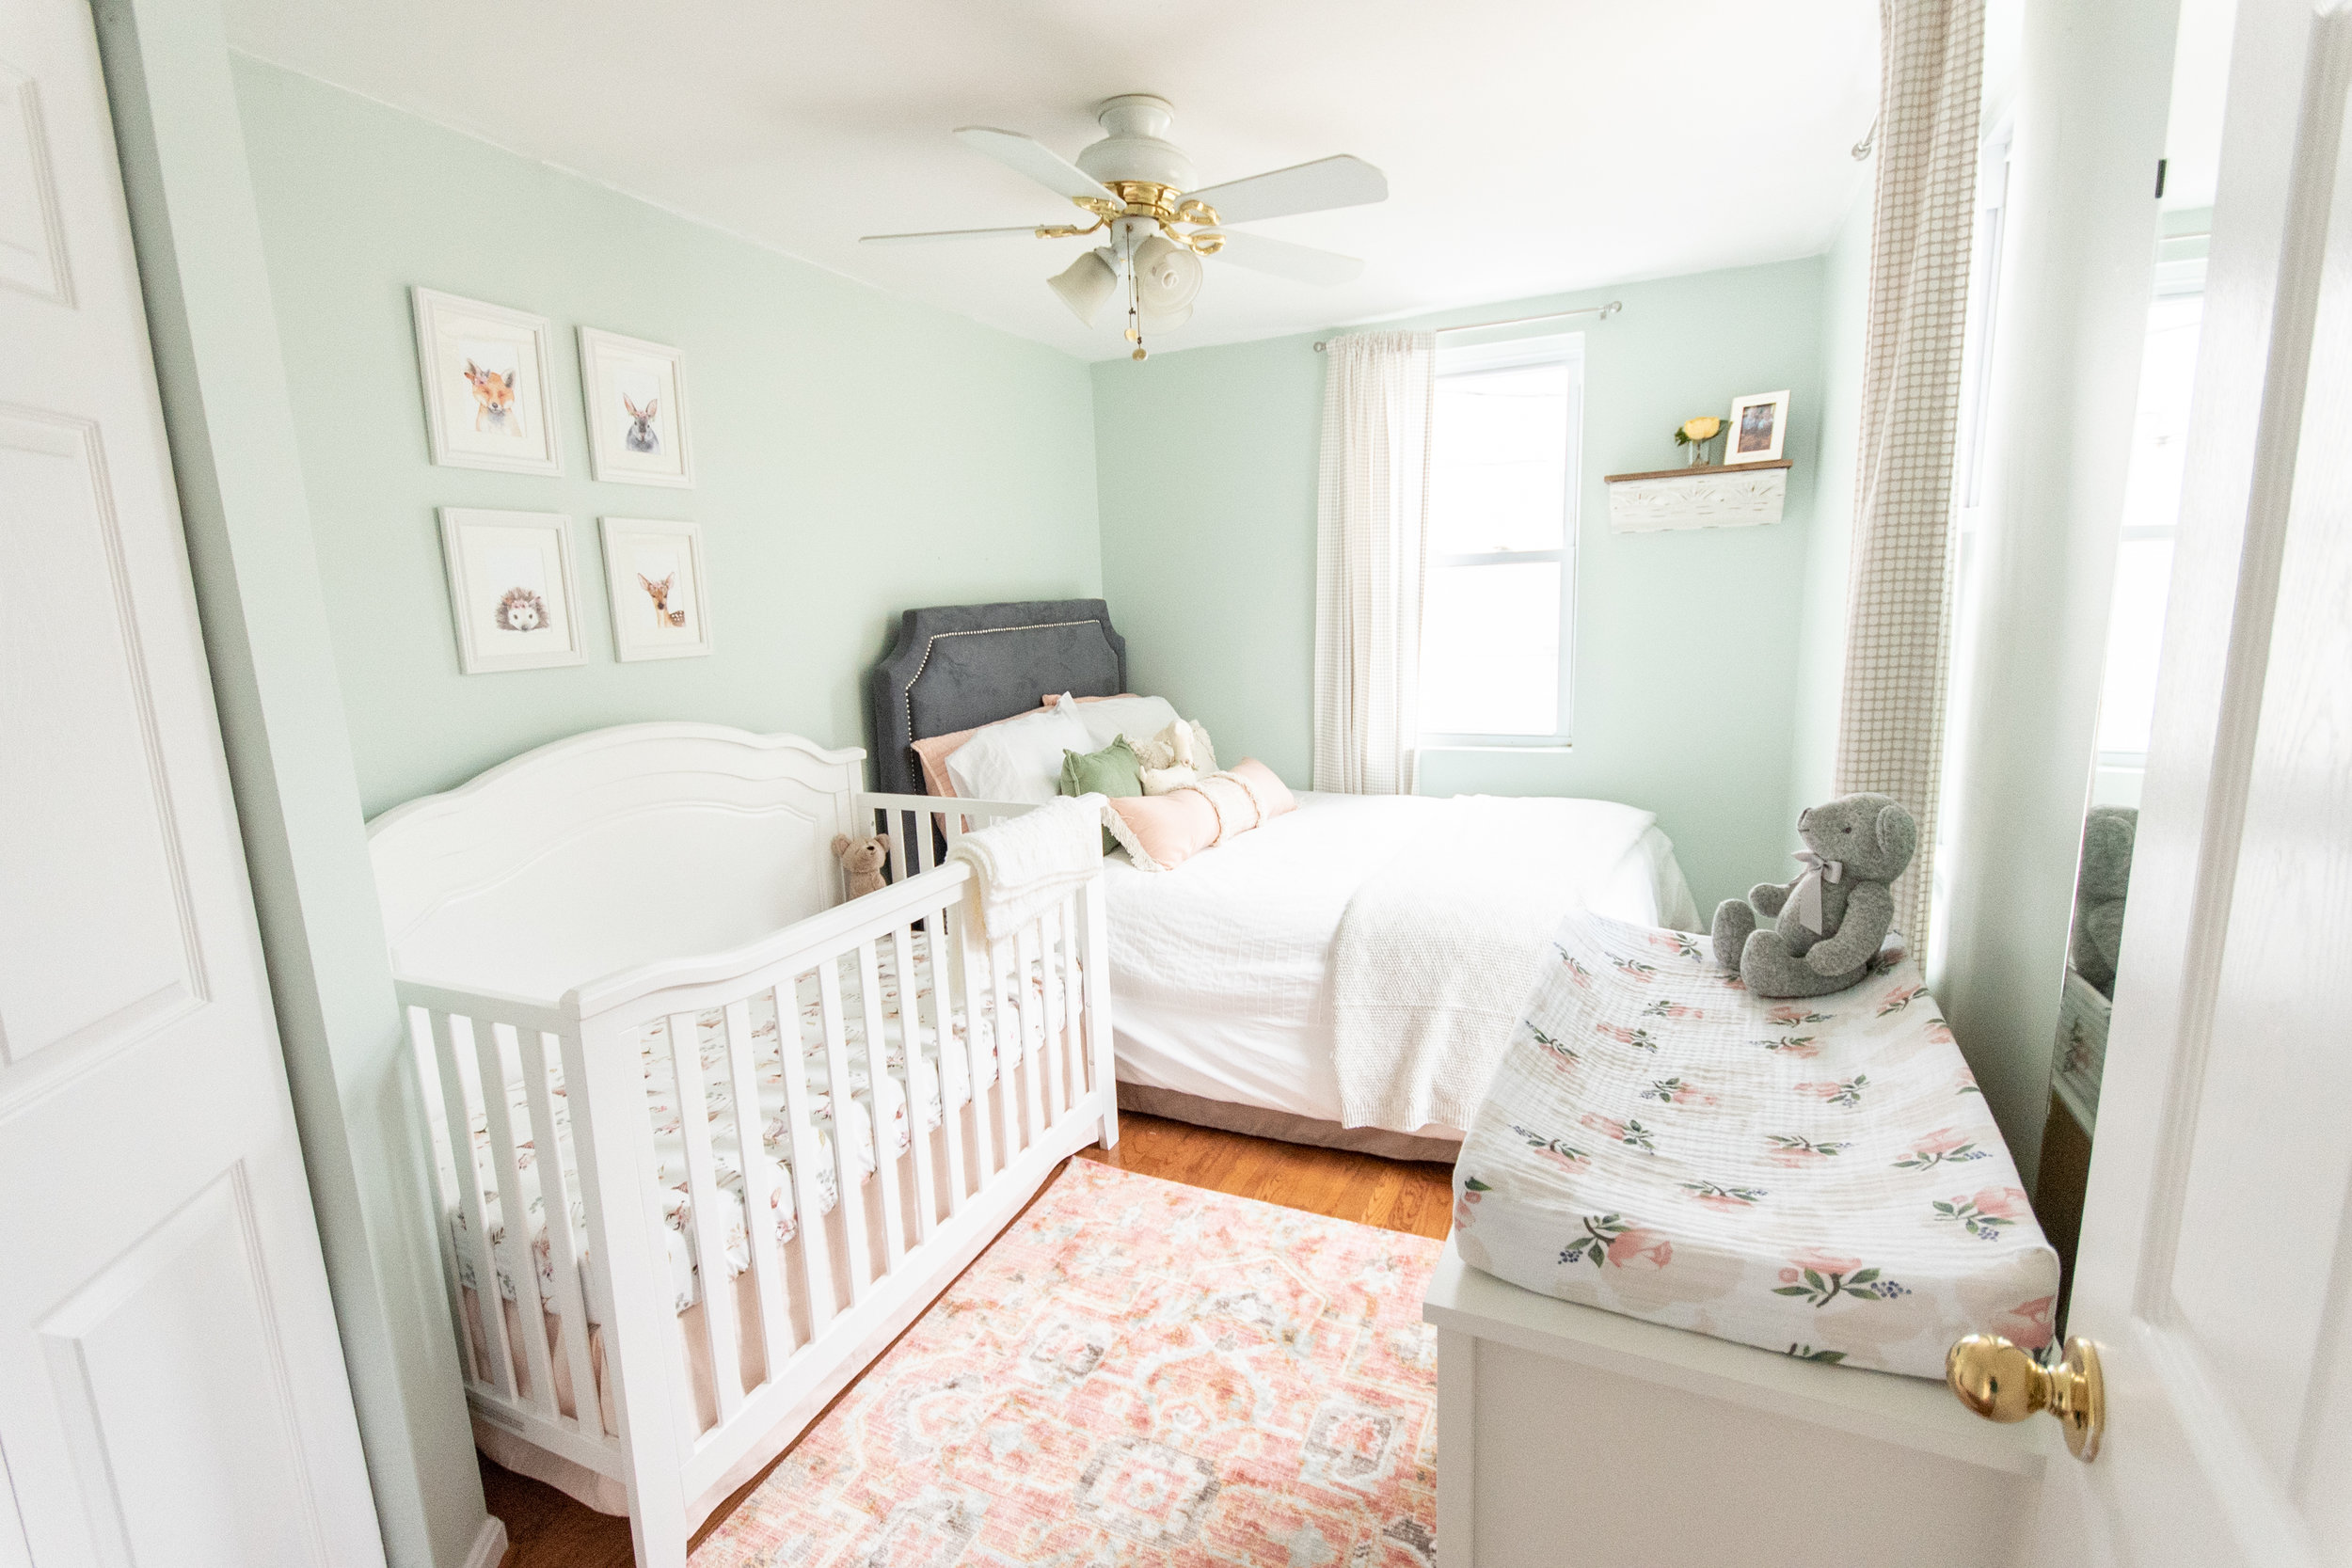 Such a cute nursery and love the idea of having a bed in there as well!